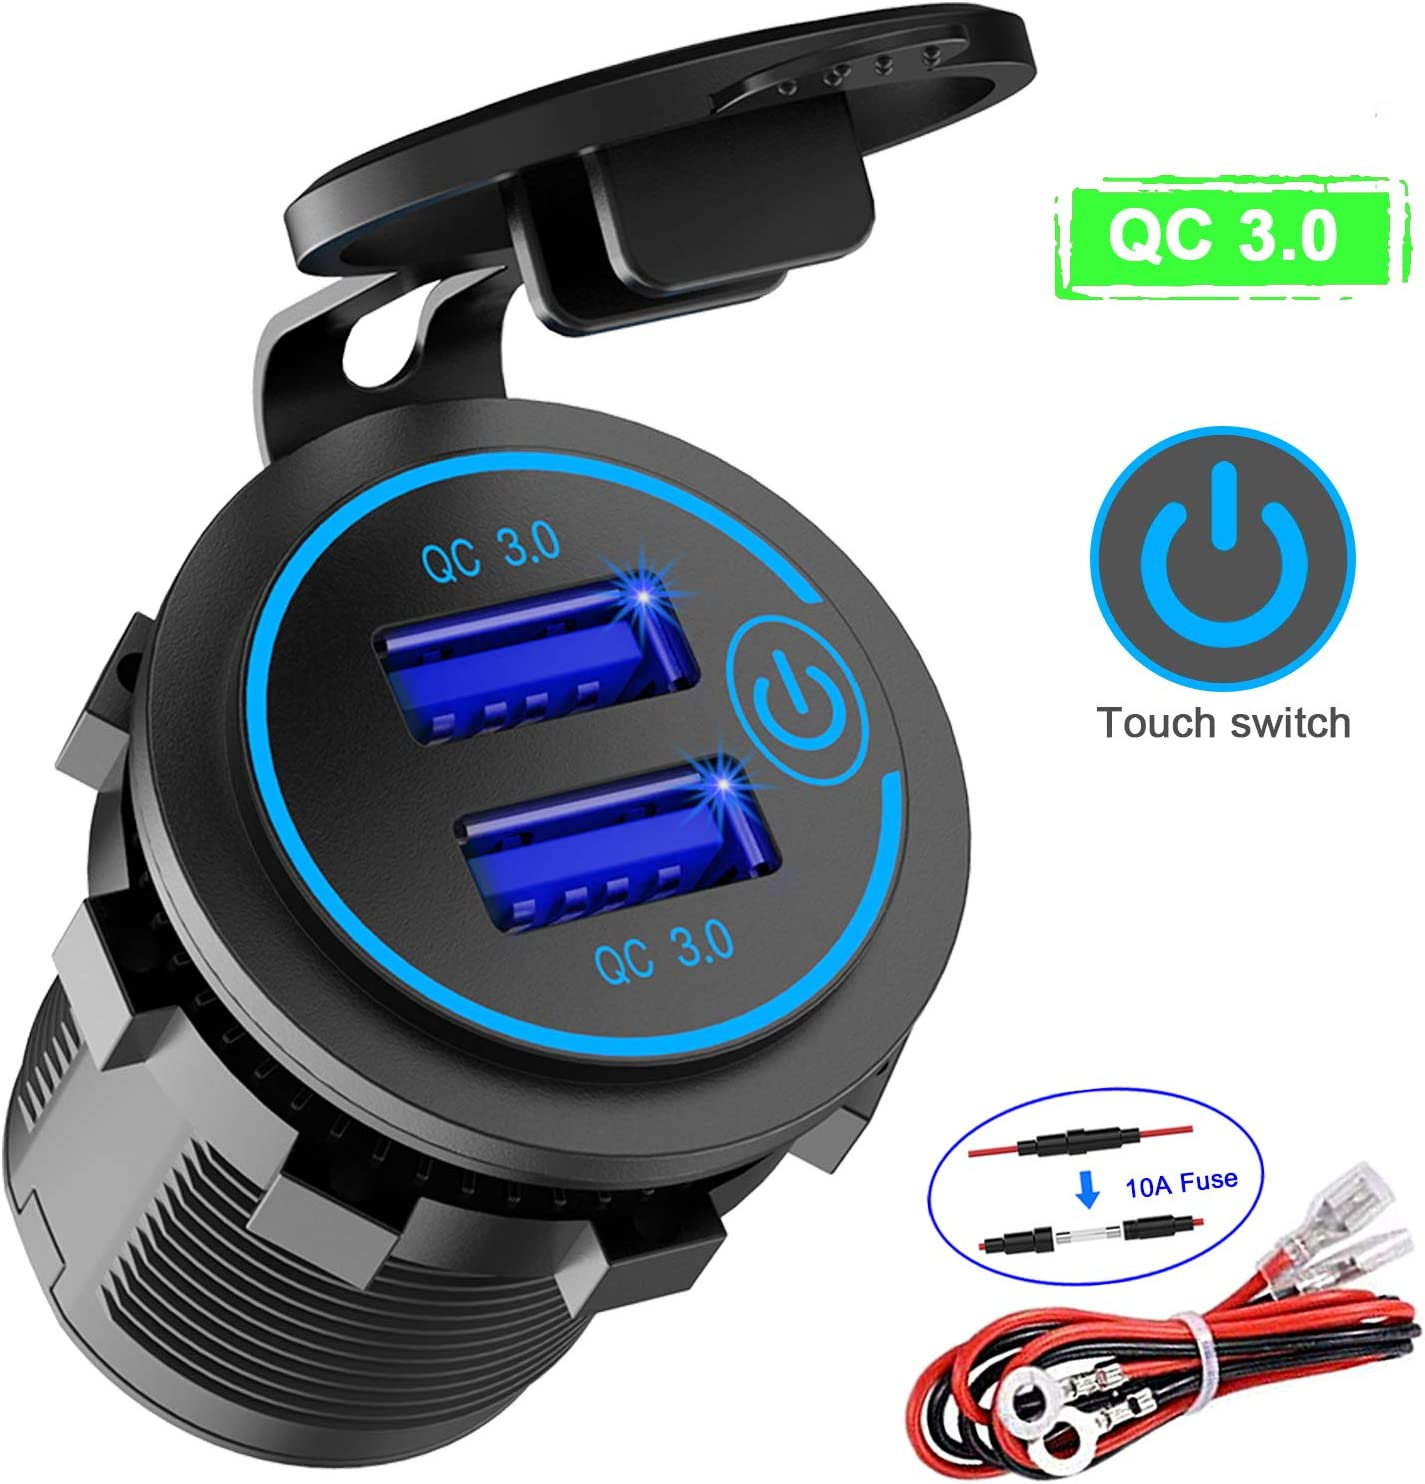 Quick Charge 3.0 Dual USB Charger Socket Waterproof 12V//24V QC3.0 Dual USB Fast Charger Socket Power Outlet with Touch Switch for Marine Motorcycle Truck and More Boat